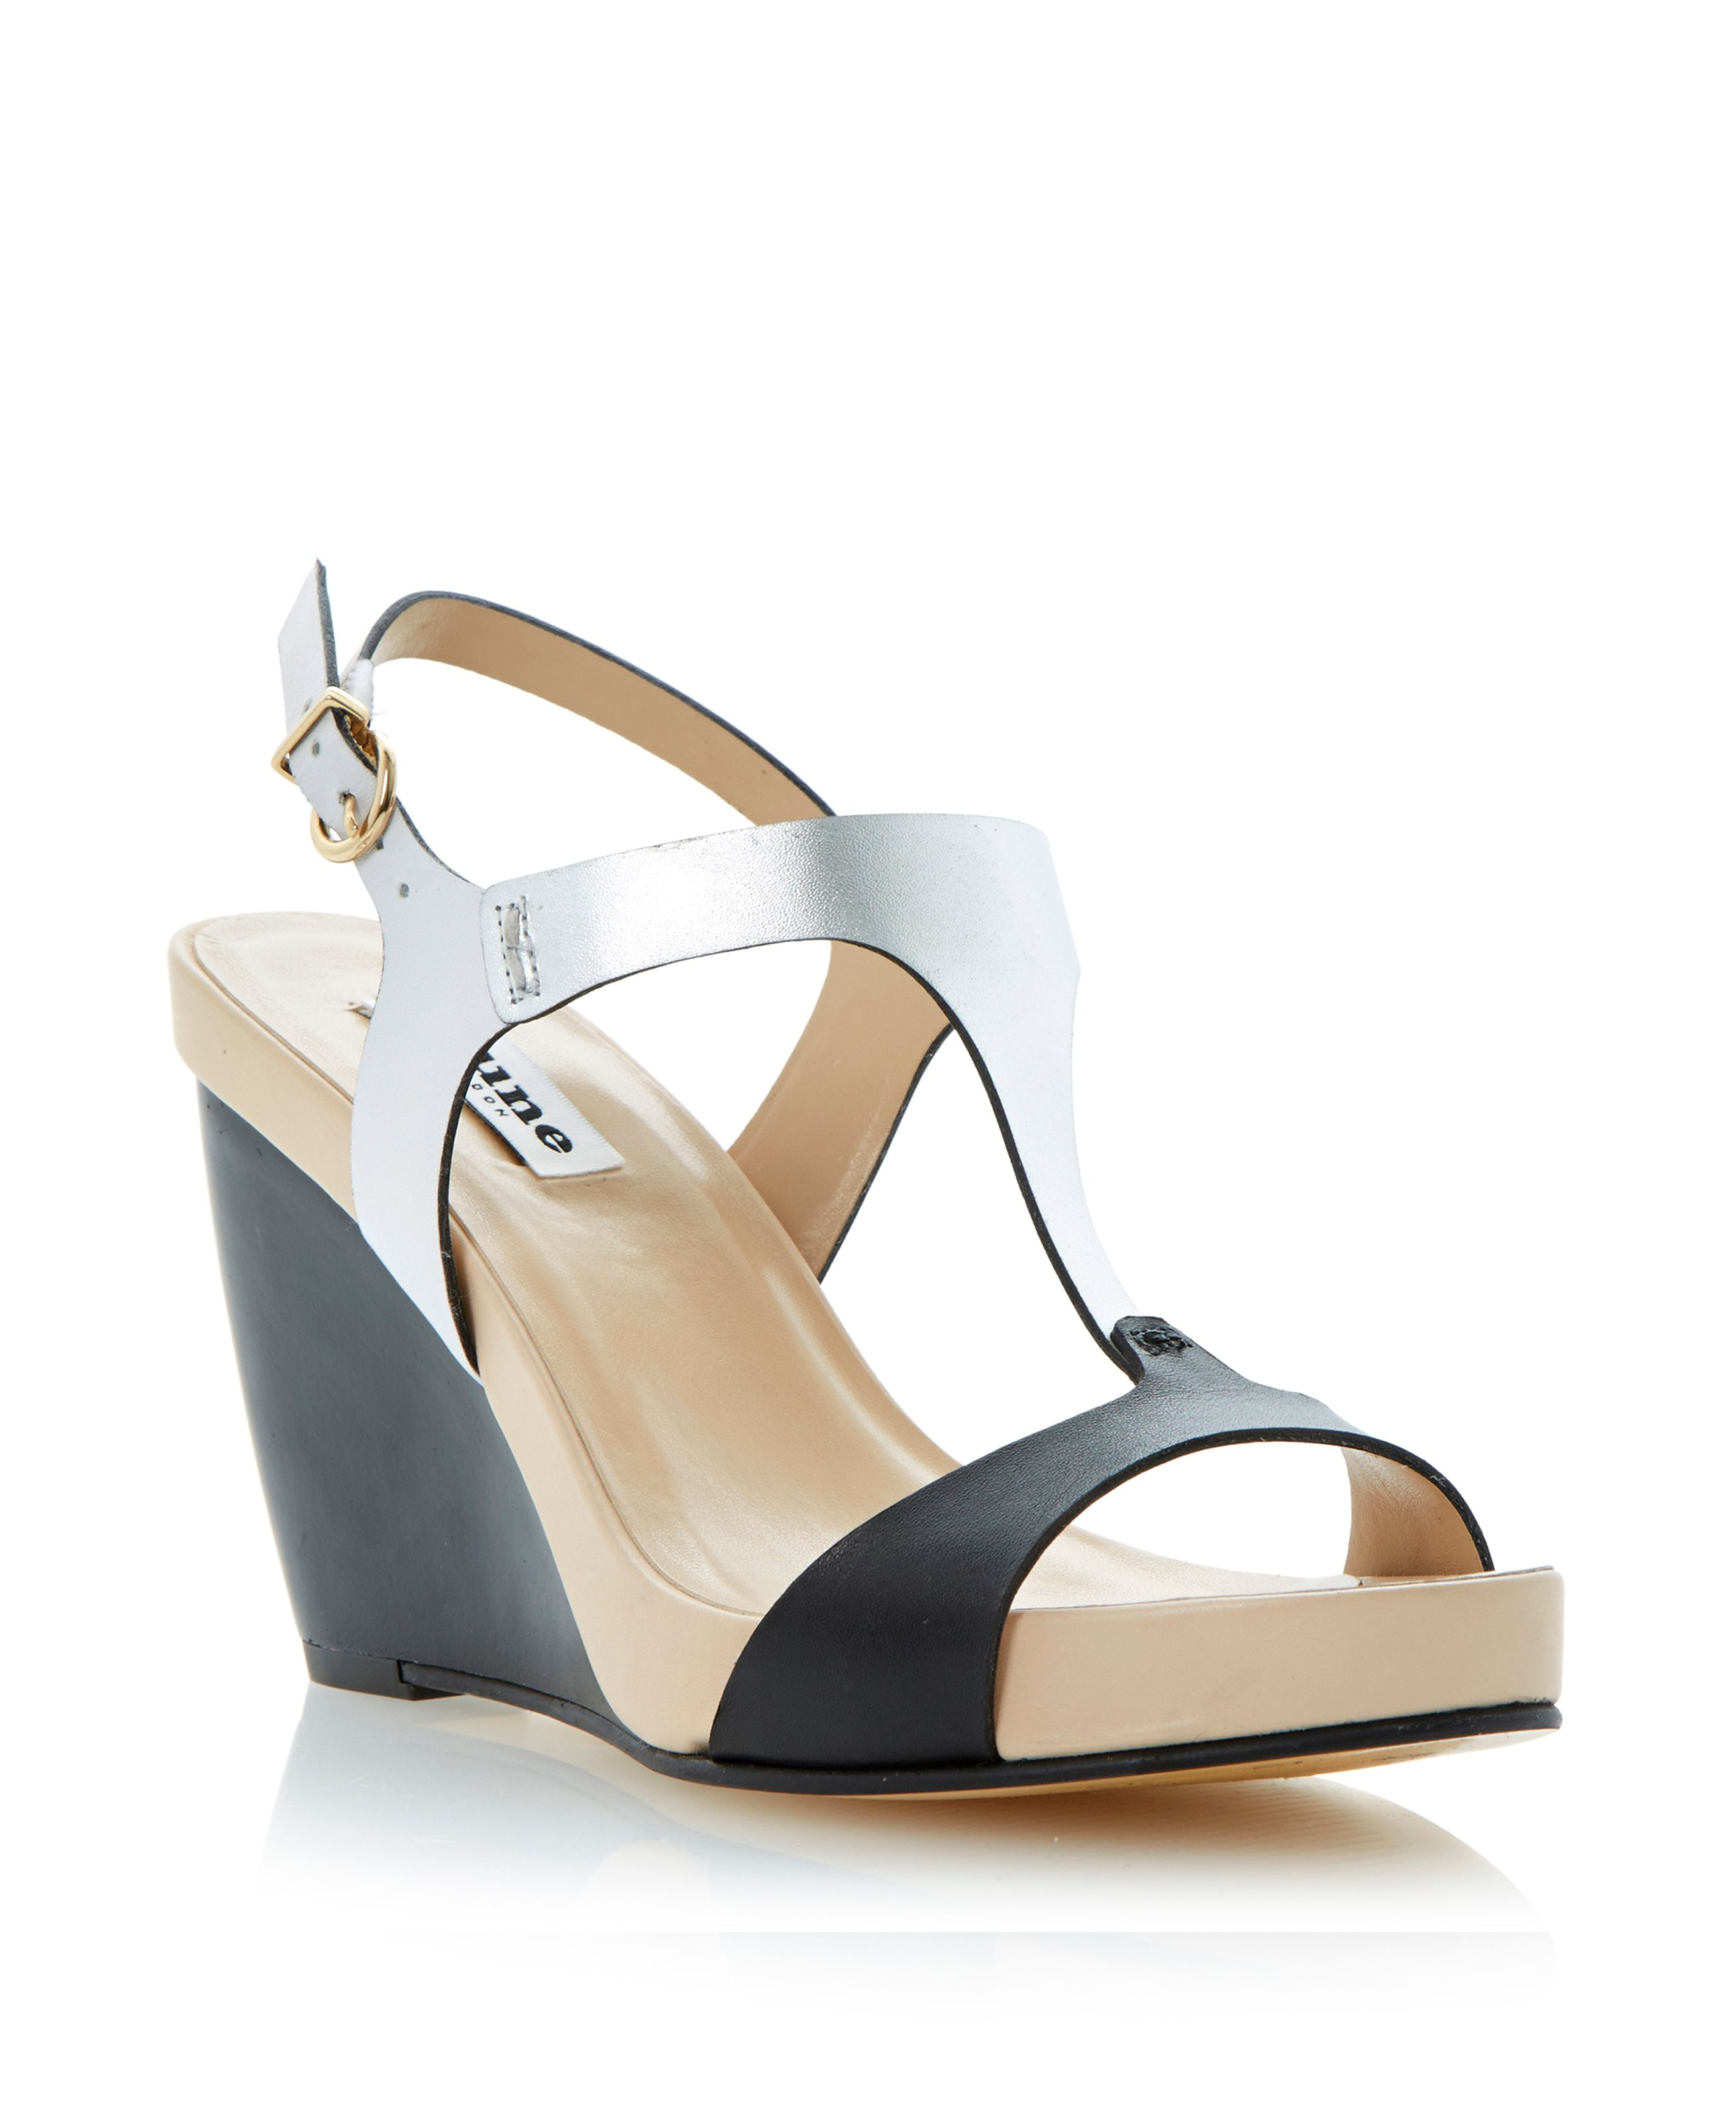 Giselle buckle leather wedge sandals